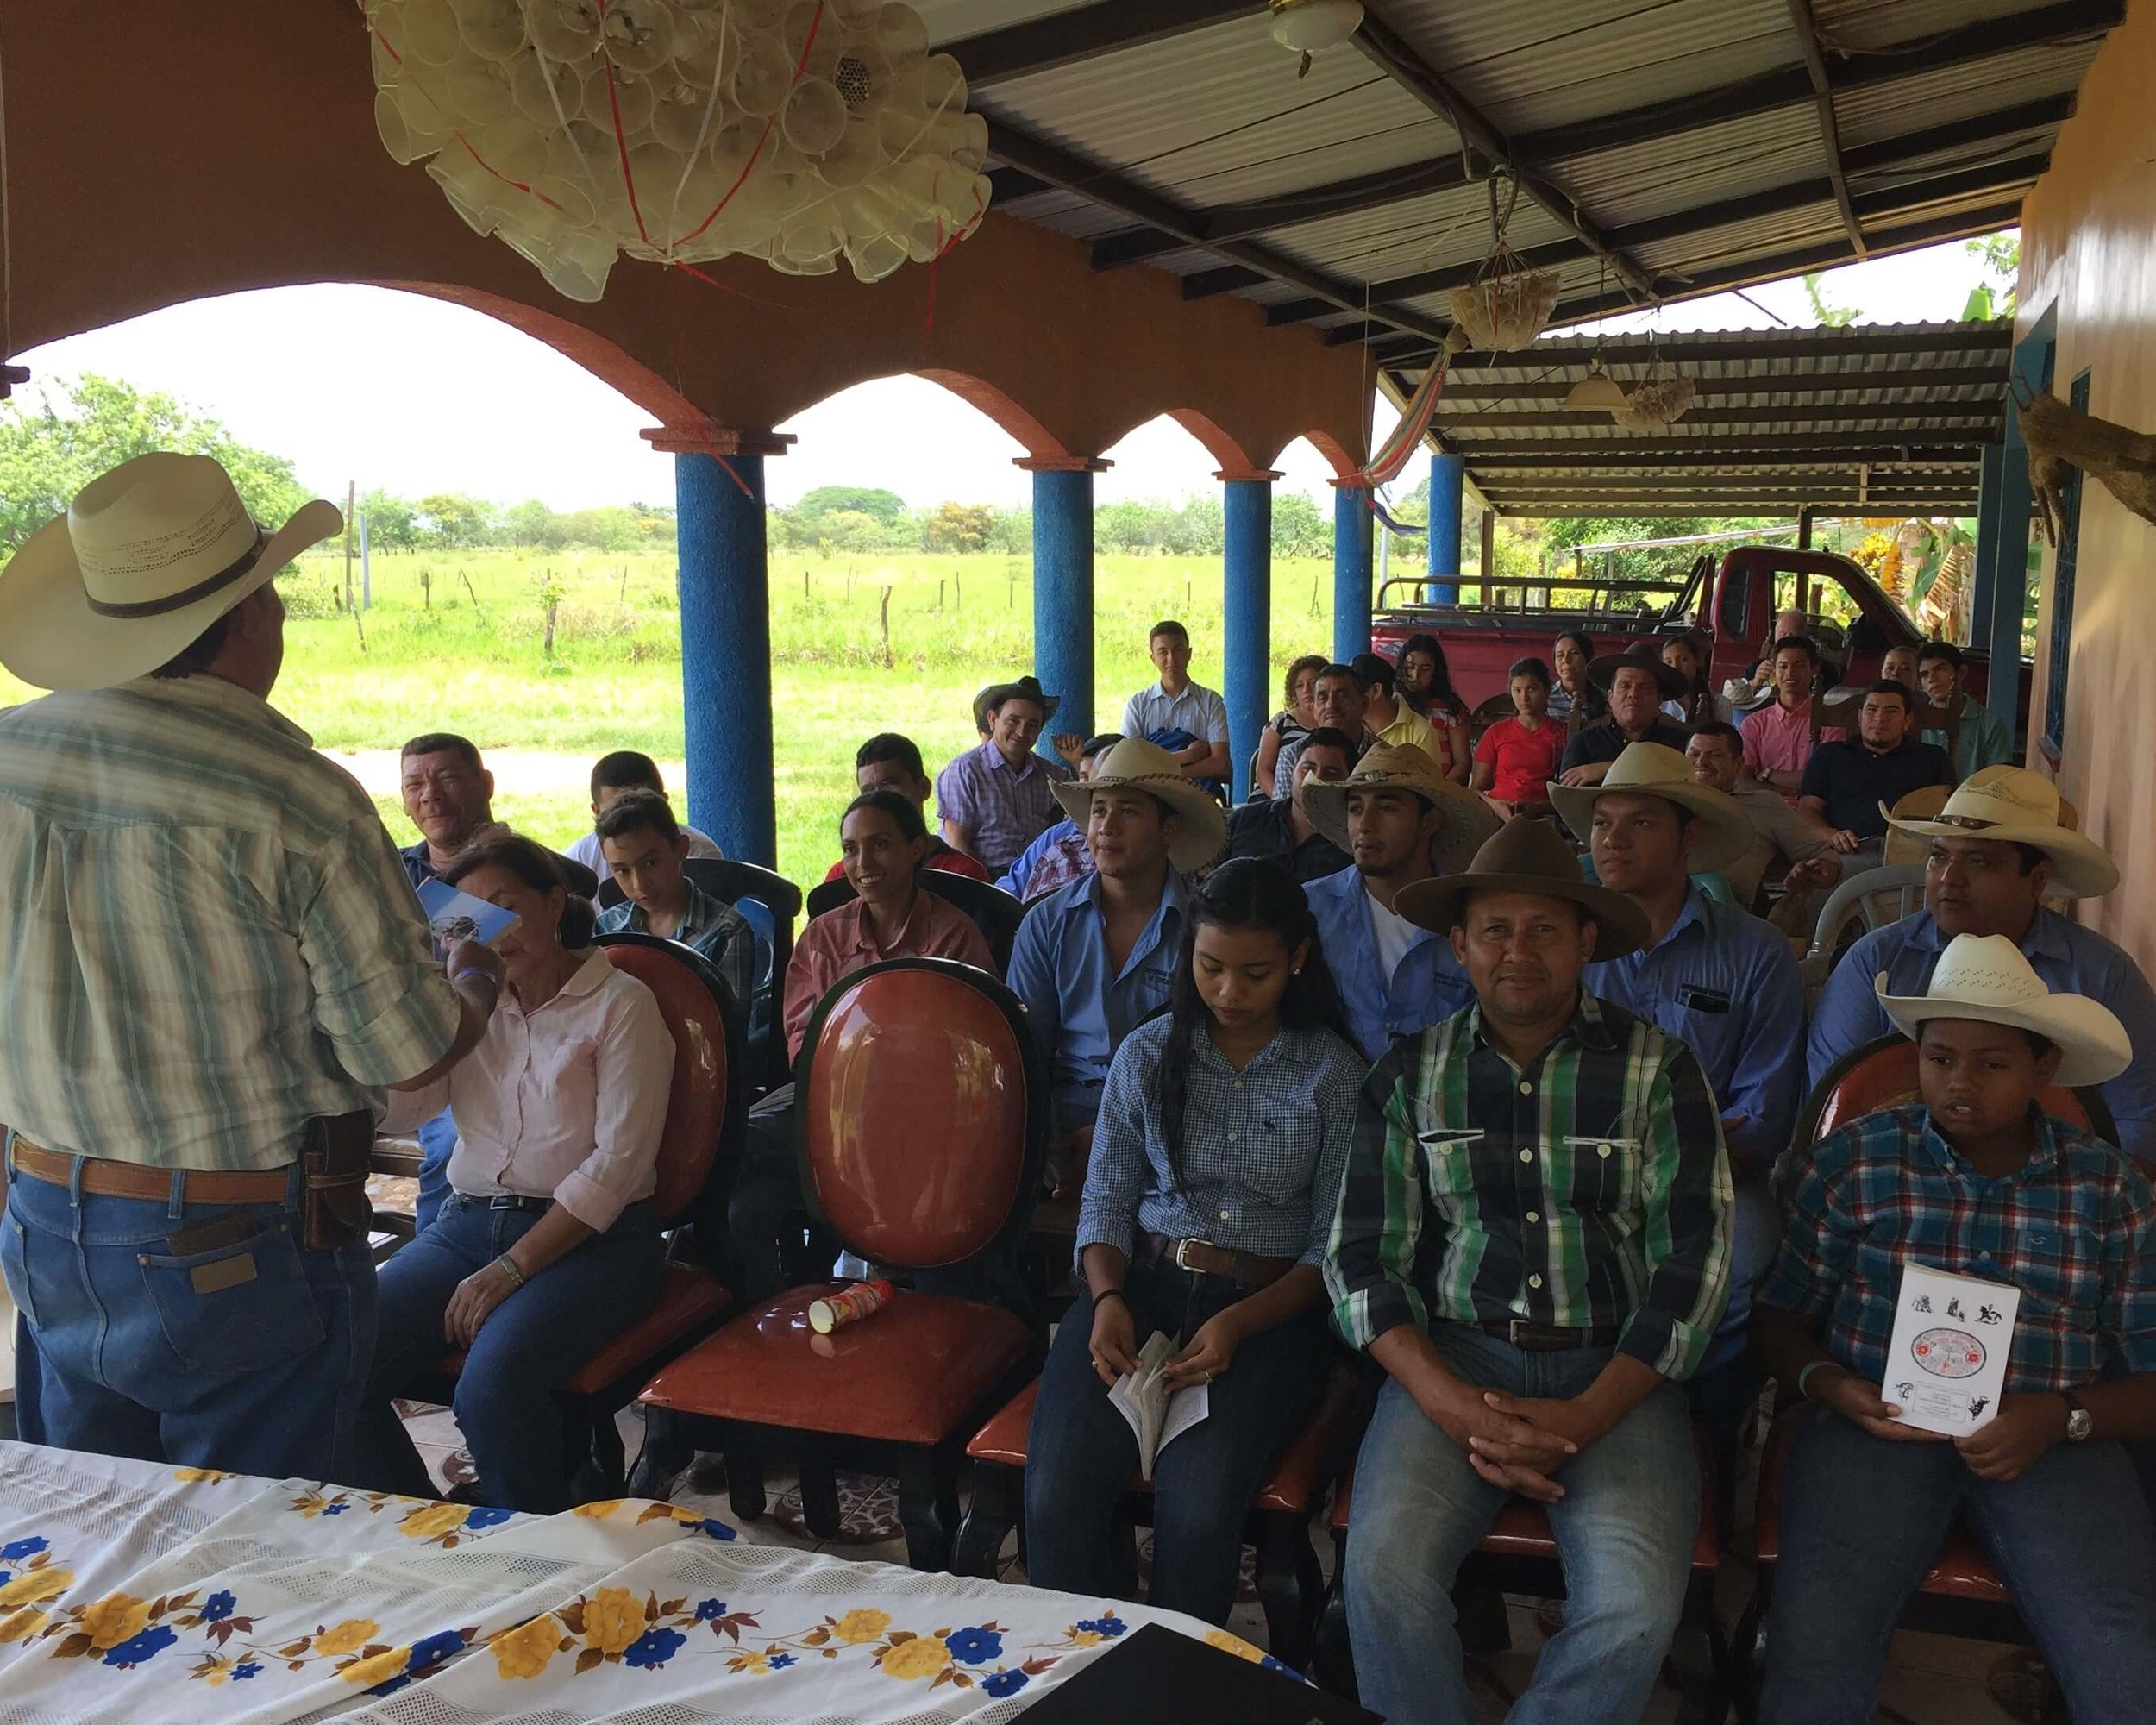 Cesar Gonzalez speaking to the gathering at Jose Matute's ranch